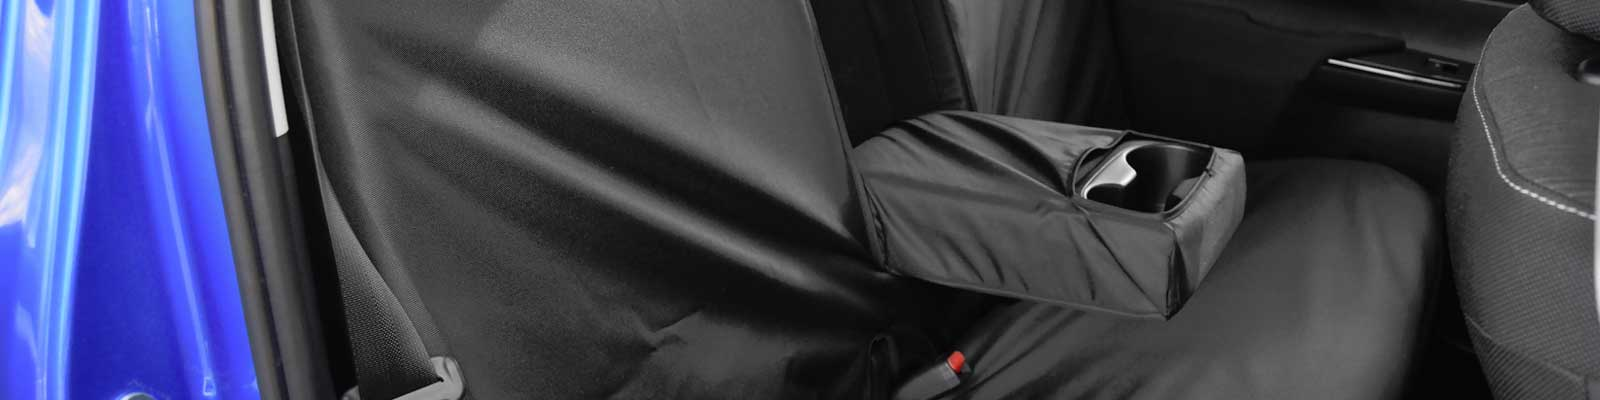 Universal & Vehicle Specific Seat Covers